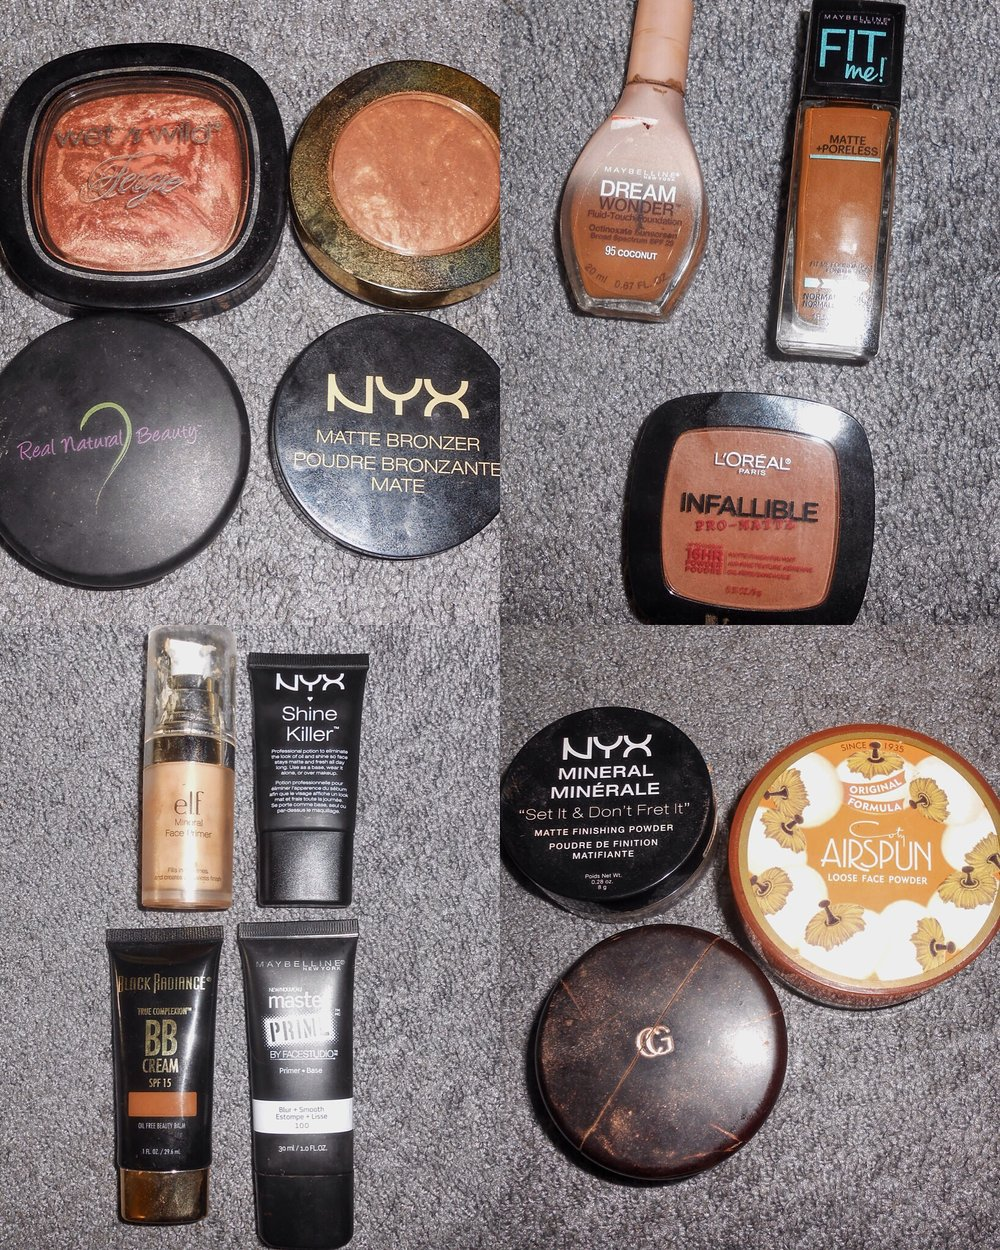 Top Left Corner... I love to combine different Bronzers together. I usually will add the NYX Matte Bronzer, Which has No Shimmer First and then put my other Bronzers on top of that. My Favorite are From Milani, Wet n Wild and Nolie Love. Bottom Left Corner... On Days that I don't really Feel like wearing a lot of make up (Which is Often) I will wear a Primer and BB Cream and call it a day. I Love the Black Radiance BB Cream, Because they have several Brown Shades to choose from and it helps to keep my skin protected during the day with SPF. My Favorite Primers have been the NYX Shine Killer, Maybelline Master Prime Smooth + Blur Primer and Elf Mineral Face Primer. I love the Elf Primer, because it adds an additional glow to what ever you put on top of it. Even before Bronzer!! Top Right Corner... Foundation and Powders... Having oily Skin some foundations I have found make me feel extra greasy (Not ok), But the Maybelline Fit Me Matte and Poreless and Maybelline Dream Wonder Fluid Touch Foundation have been my go to. Honestly a little bit goes a long way!!! My go to Powder has been the Loreal Infallible Pro-Matte. Bottom Right Corner... Setting Powders!!! The most important part about wearing makeup, is setting your face and making sure that you look amazing all day!! The NYX Mineral Set it and don't Fret it Powder has been my favorite for the past year, but then I discovered the Coty Airspun Powder recently and that one has been what I have used a lot lately. The Air Spun Powder keeps me Matte for most of the day, which is amazing because I use to have to do a Million Touch ups!! The Last setting powder is the Cover Girl Professional Finishing Power and it has a slight shimmer to it, so I use it after I set my Concealer Before I put on Bronzer to add a little extra Shimmer.   When I get my You tube channel back up and running... I will show in a Video how I use everything :)